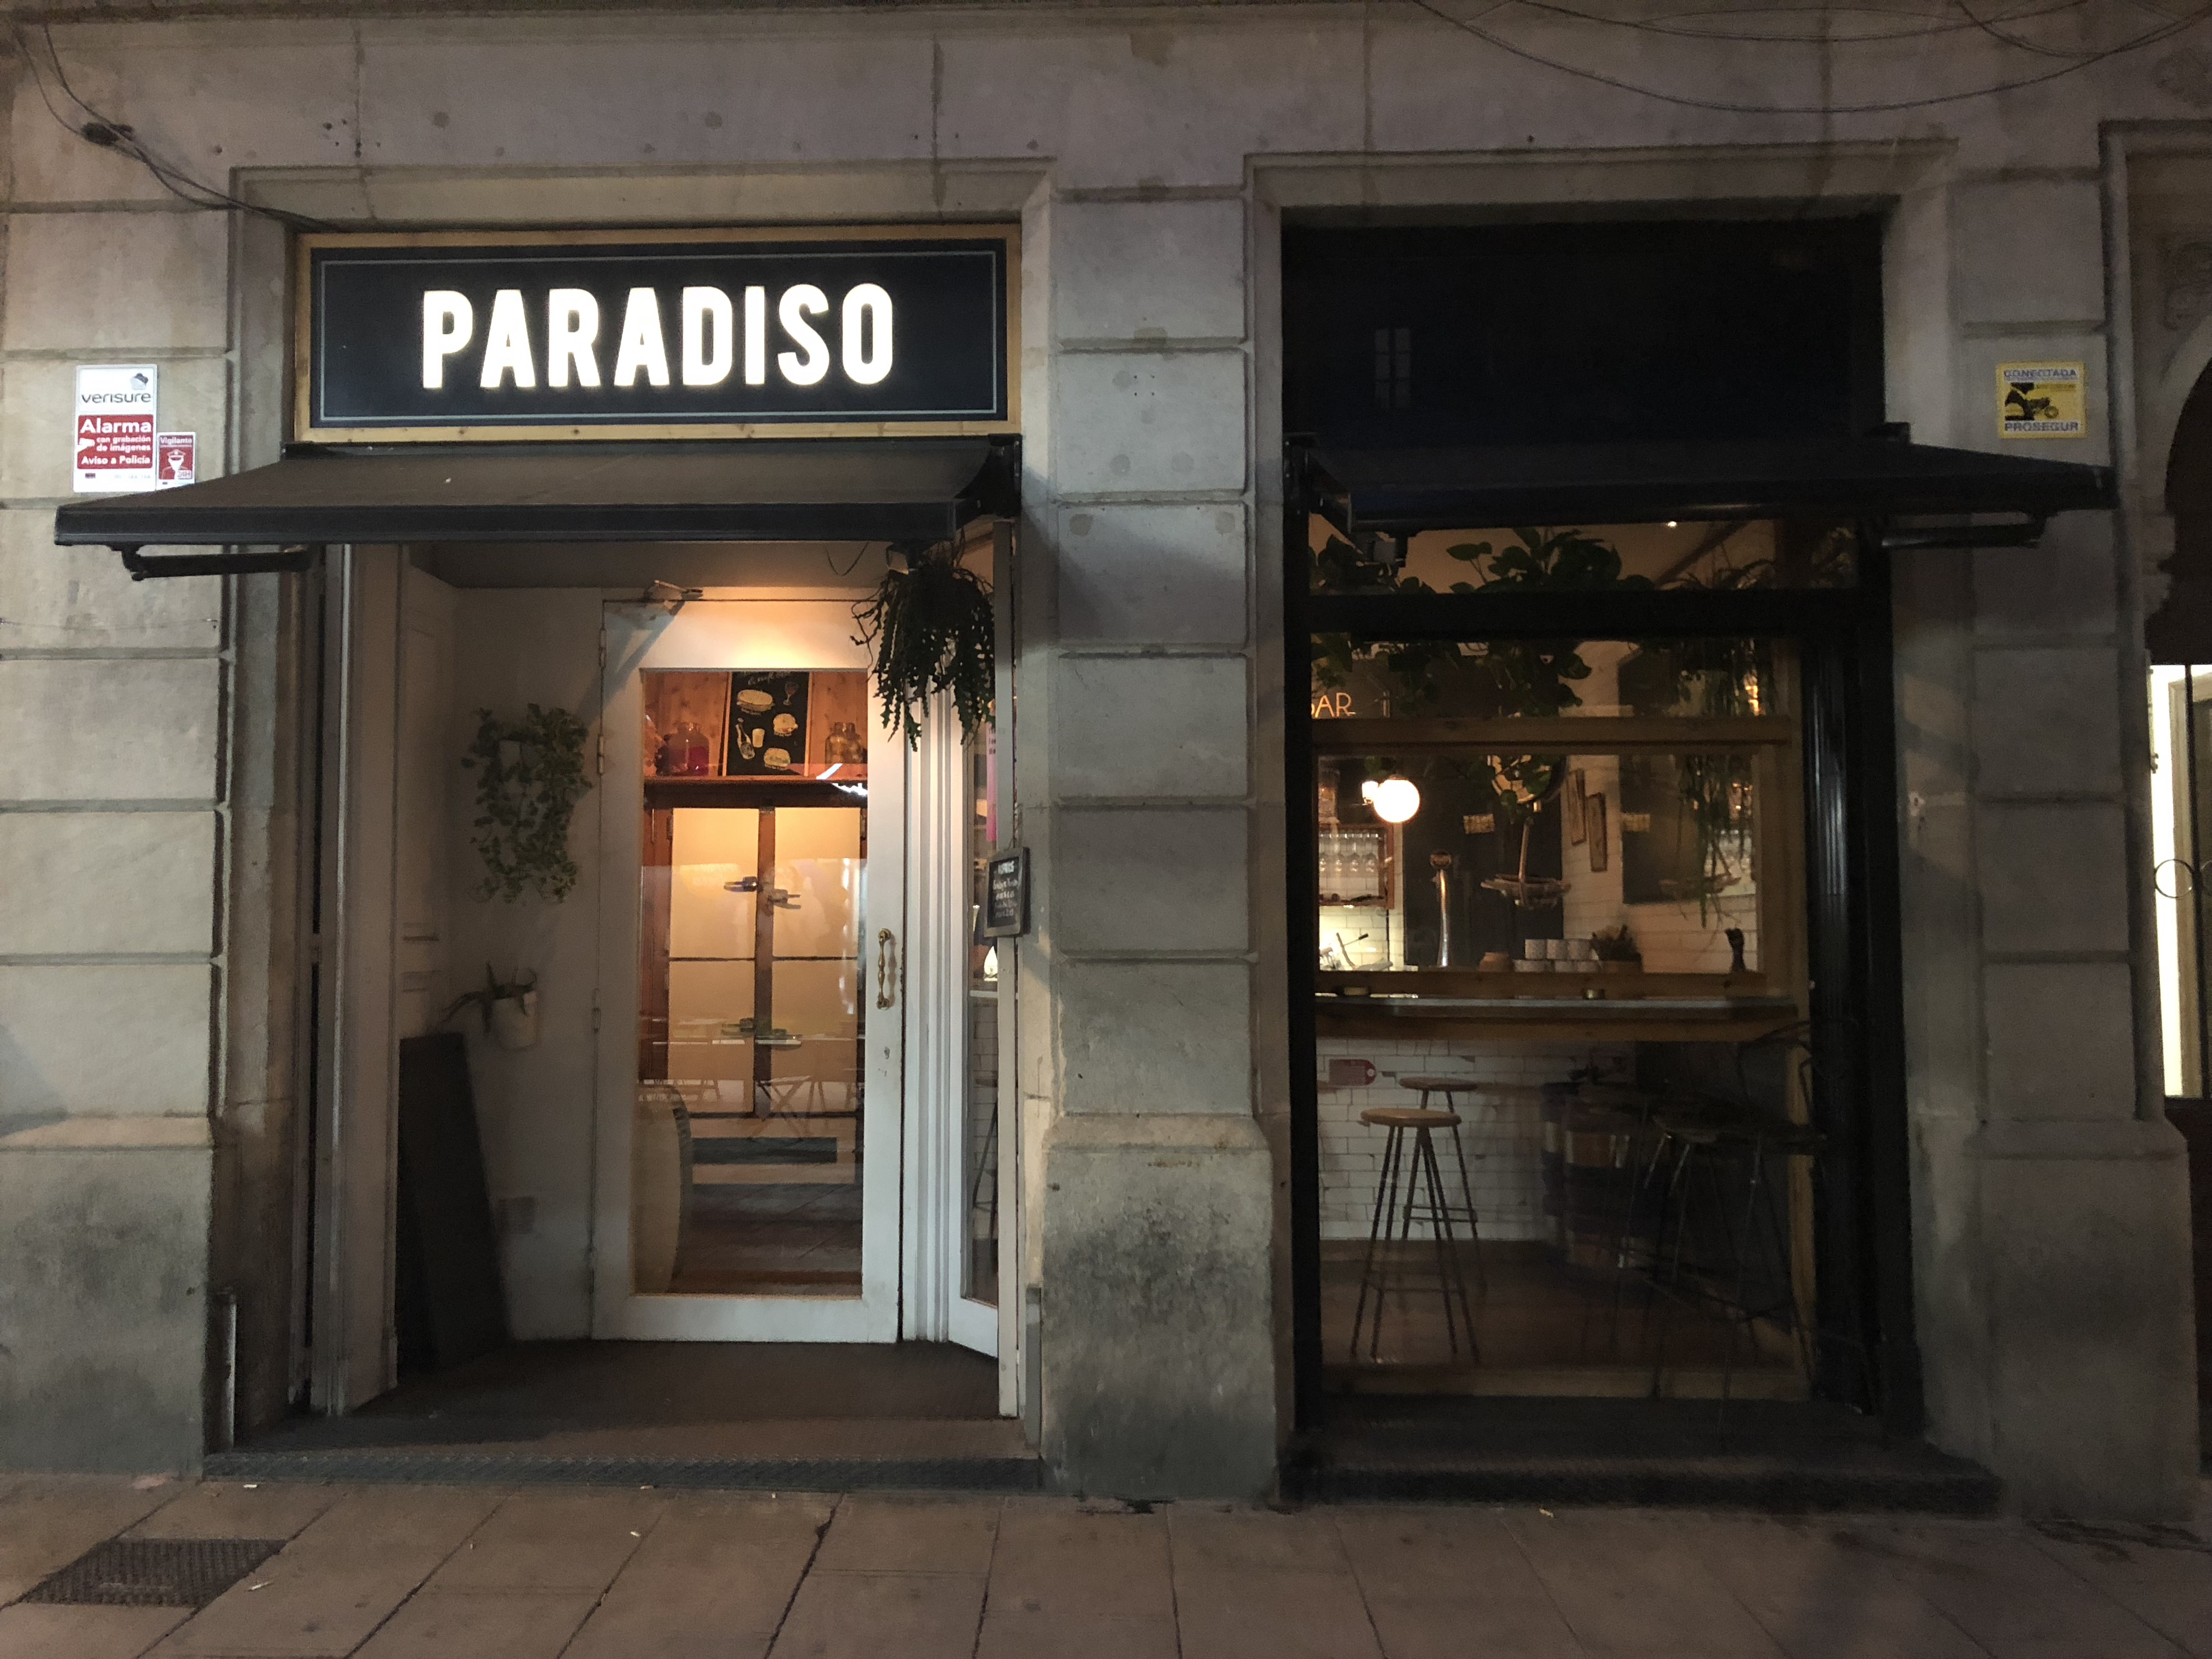 Paradiso - Barcelona's Secret Cocktail Club